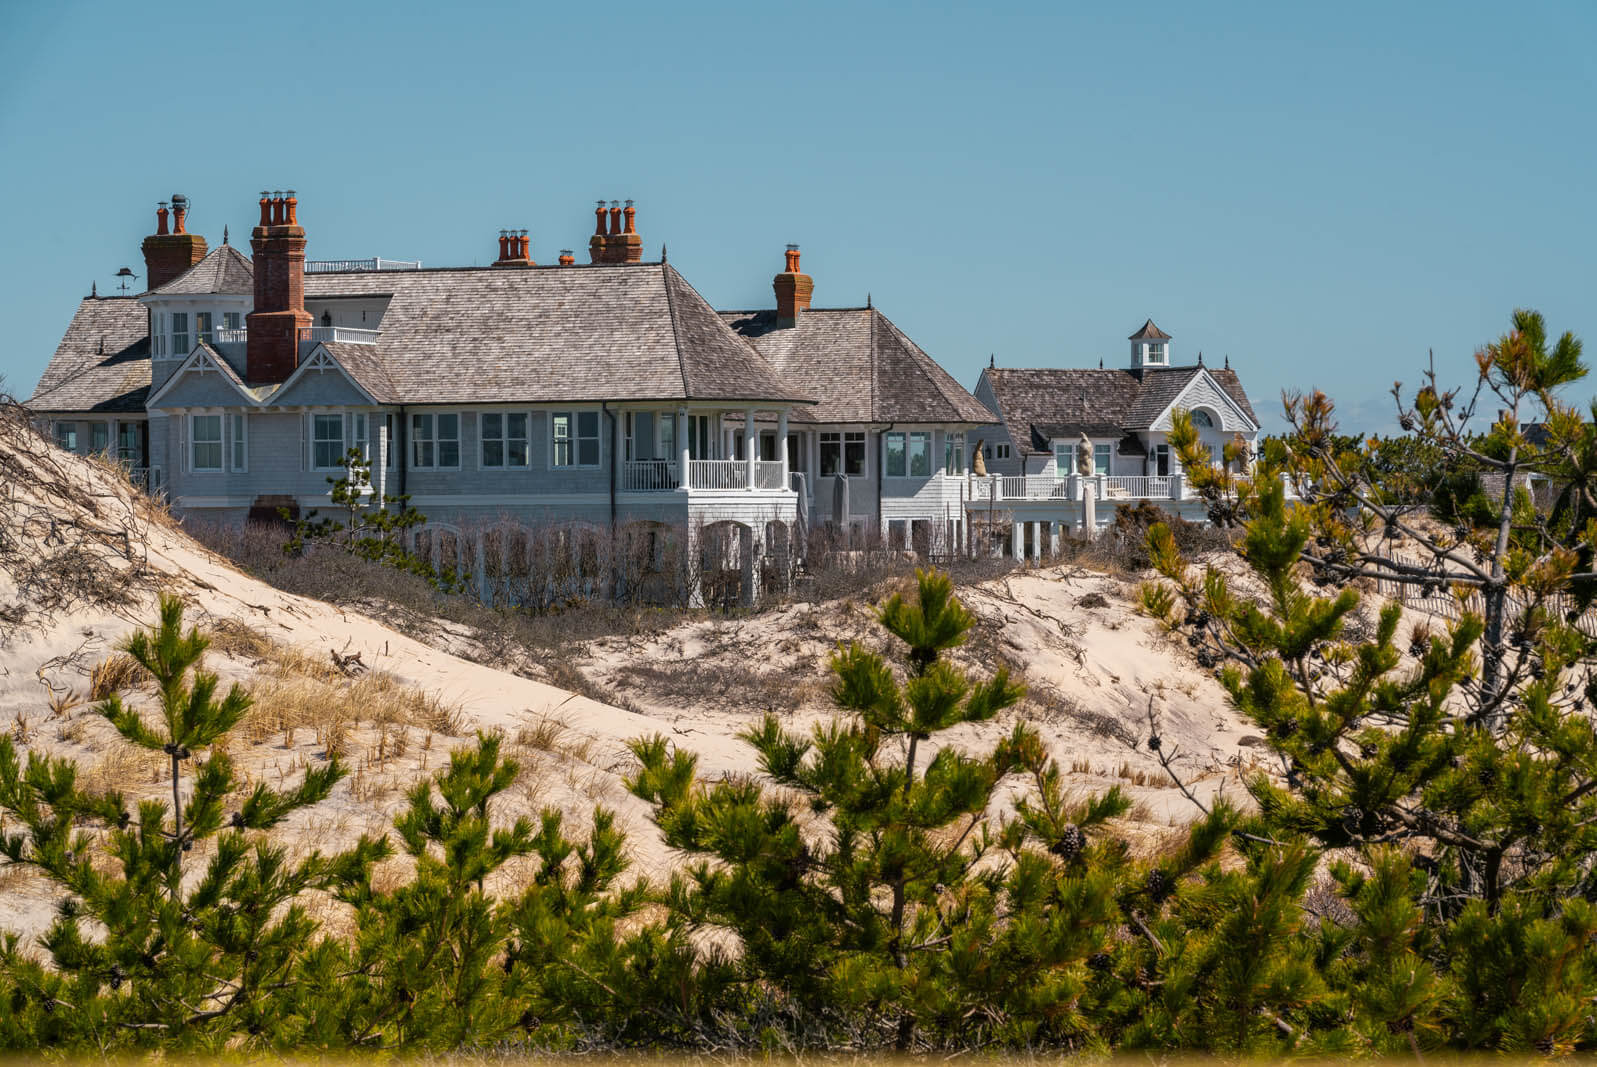 Meadow Lane home in Southampton the Hamptons New York that was in the show Billions on Coopers Beach